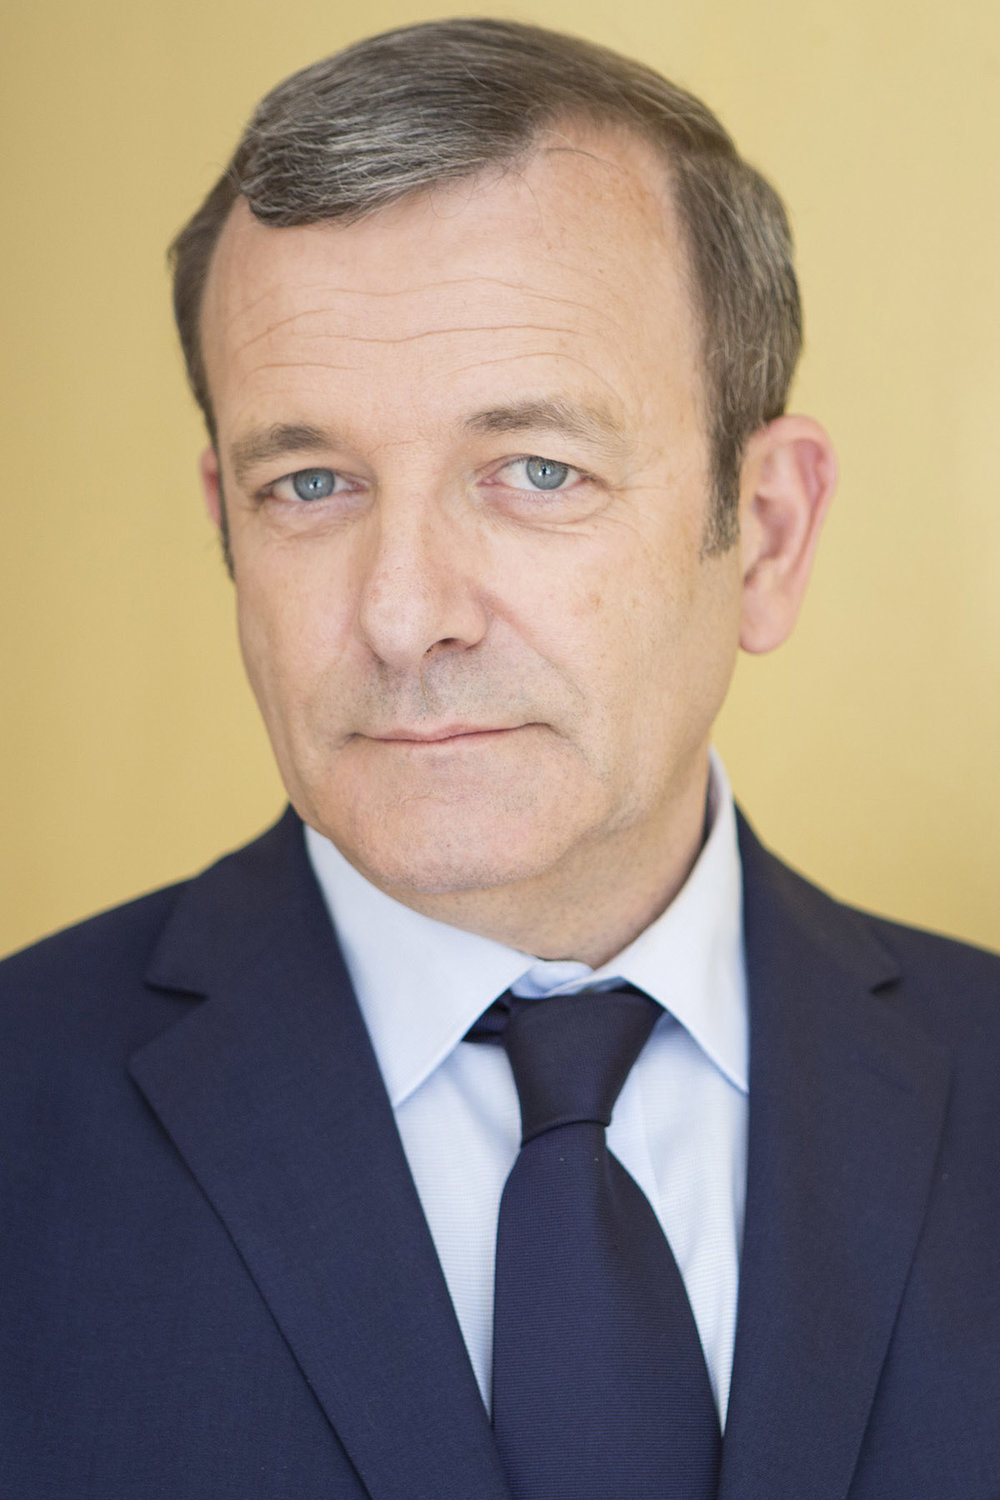 JEAN-CHRISTOPHE NIGON